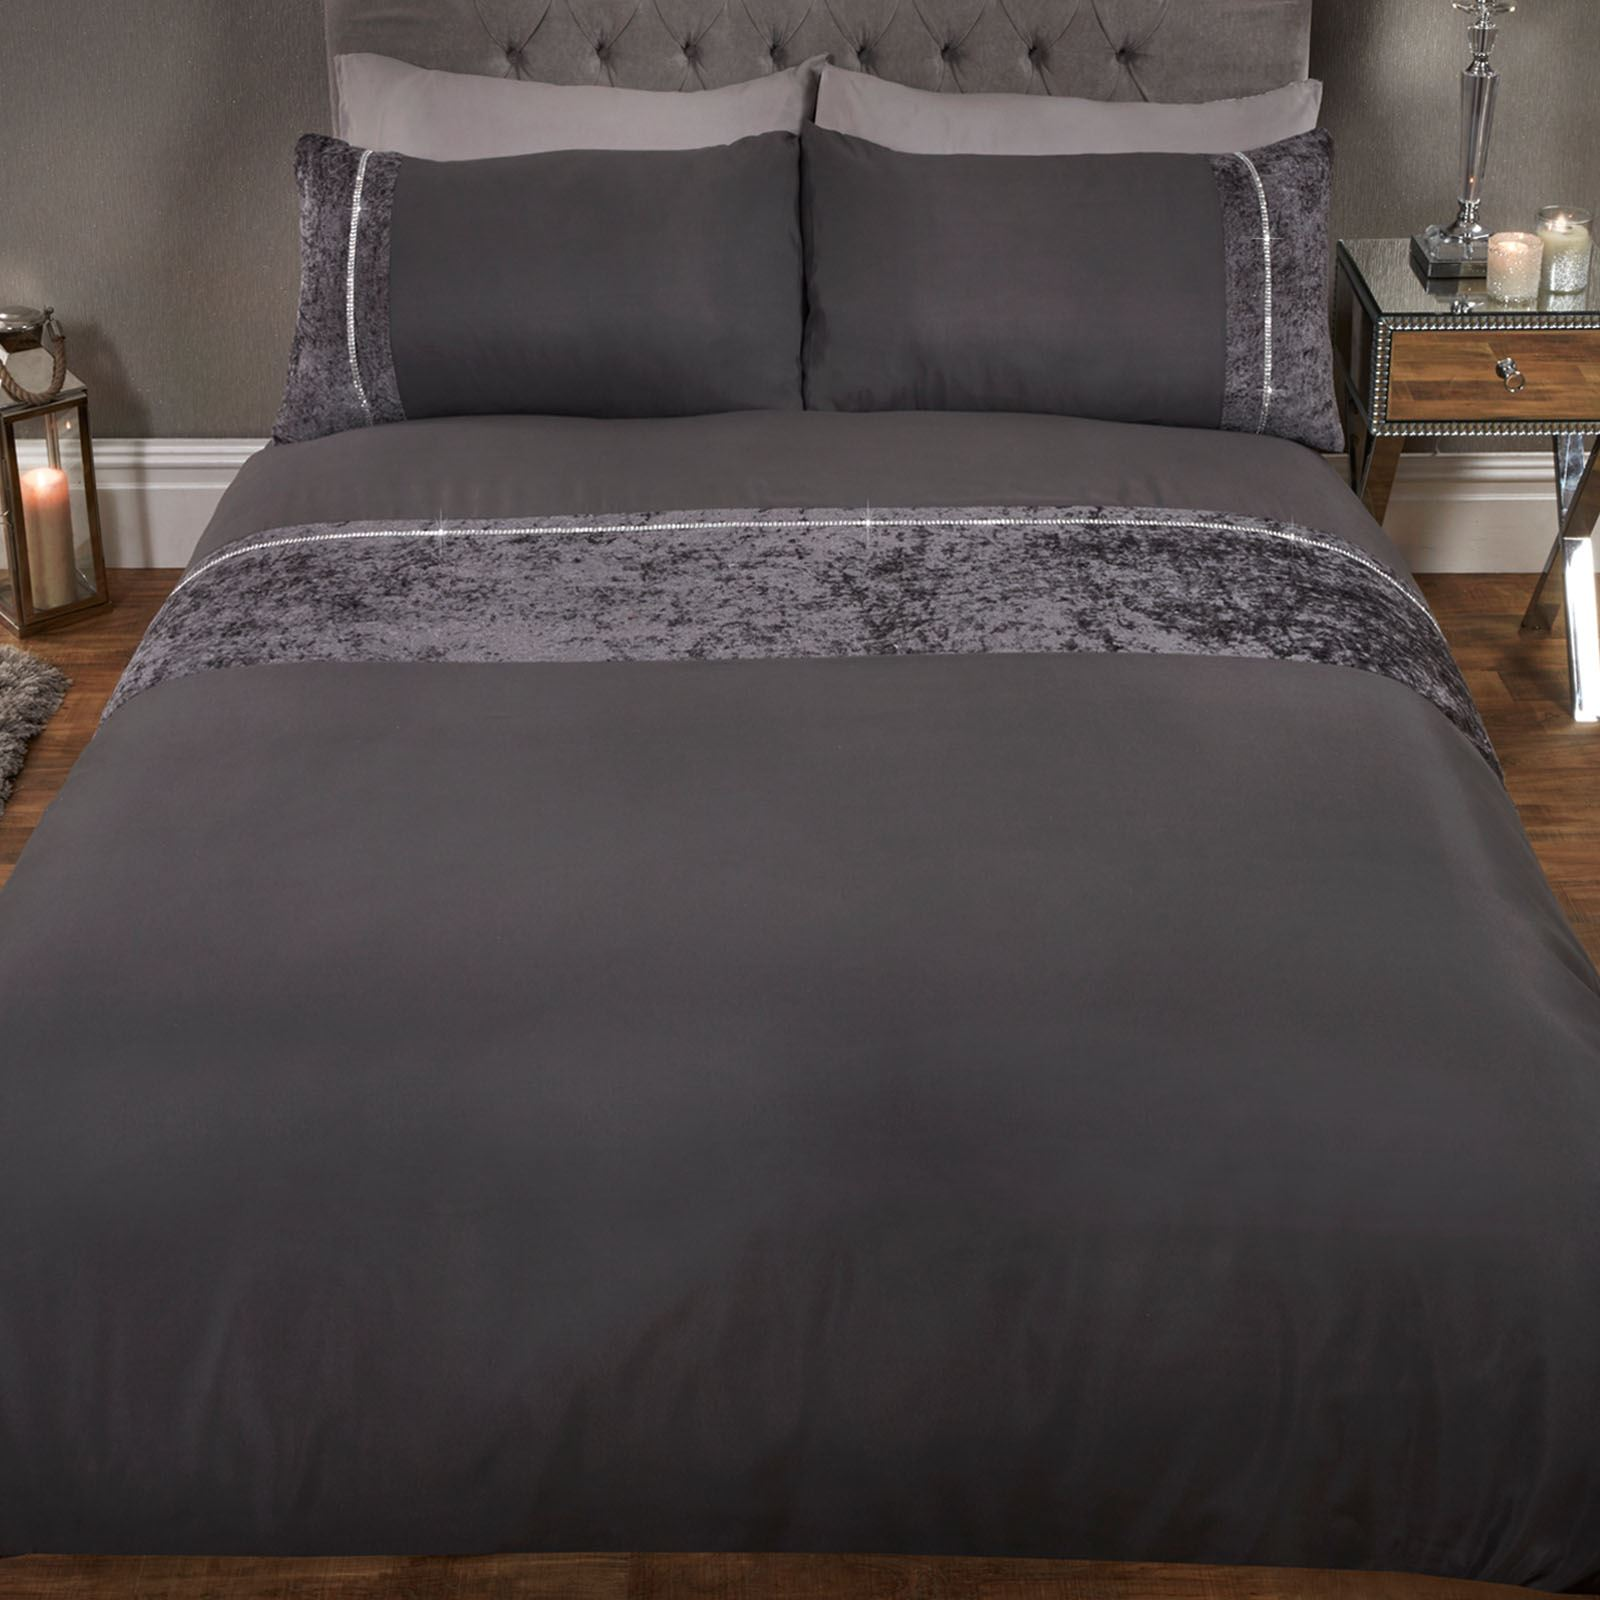 Sienna-Crushed-Velvet-Diamante-Band-Duvet-Cover-with-Pillowcase-Grey-Bedding-Set thumbnail 6